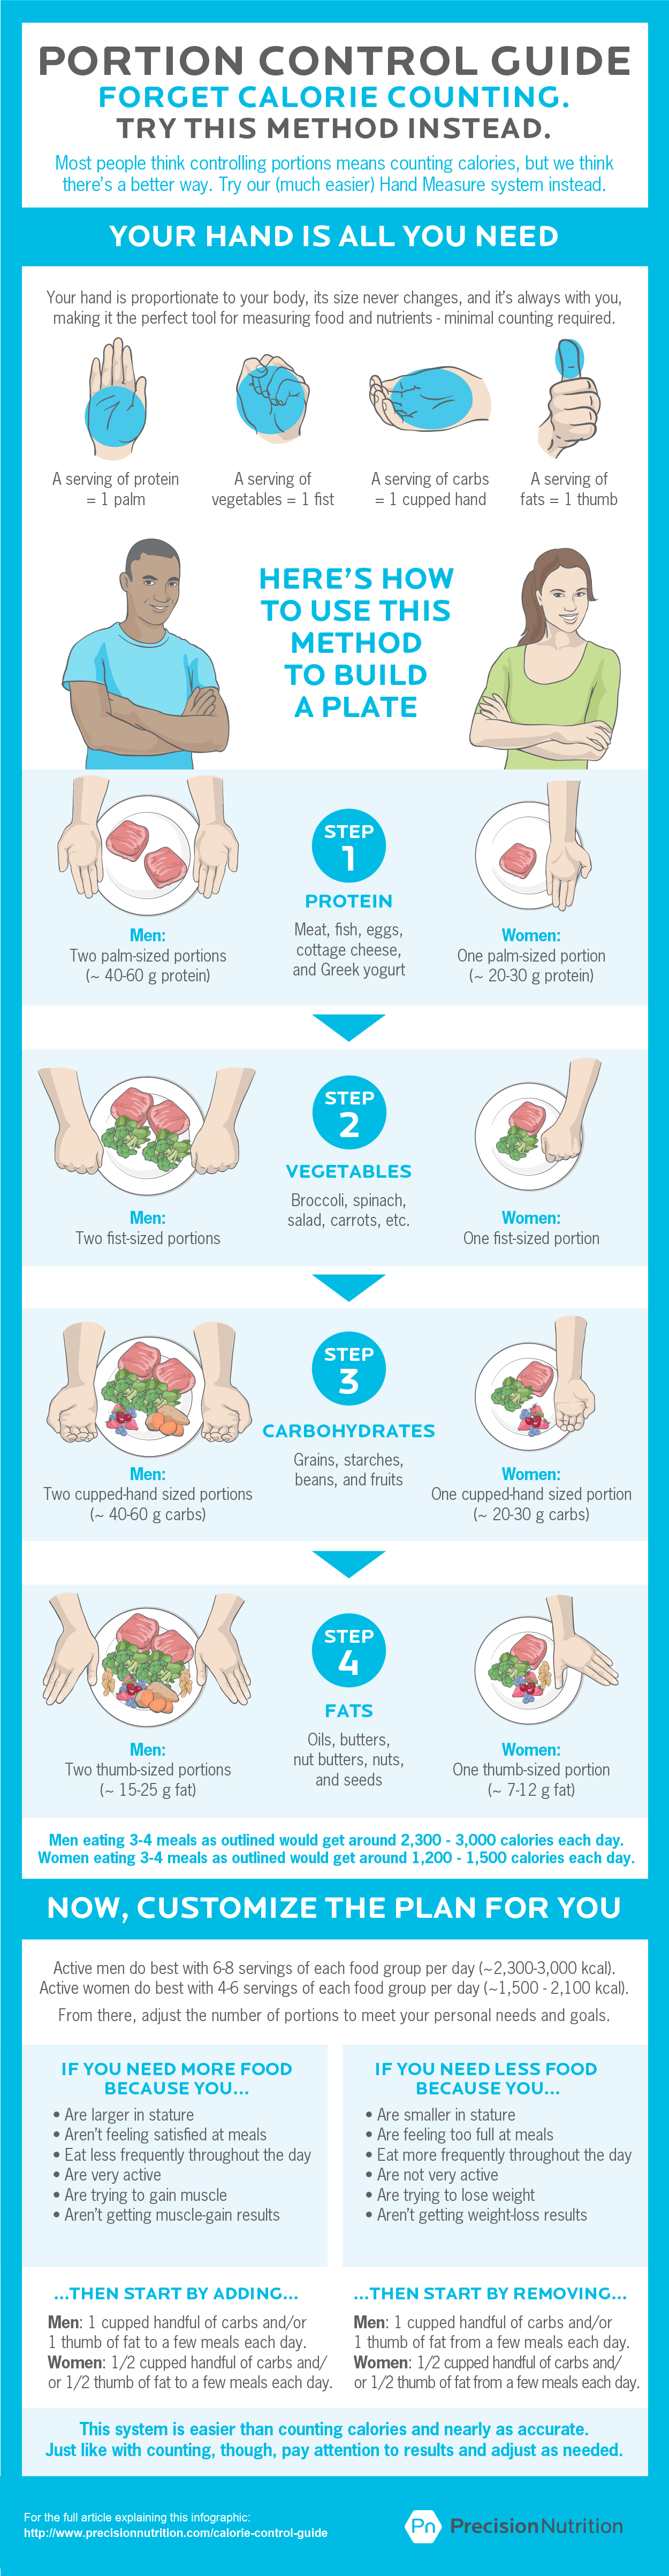 portion control guide bookmark